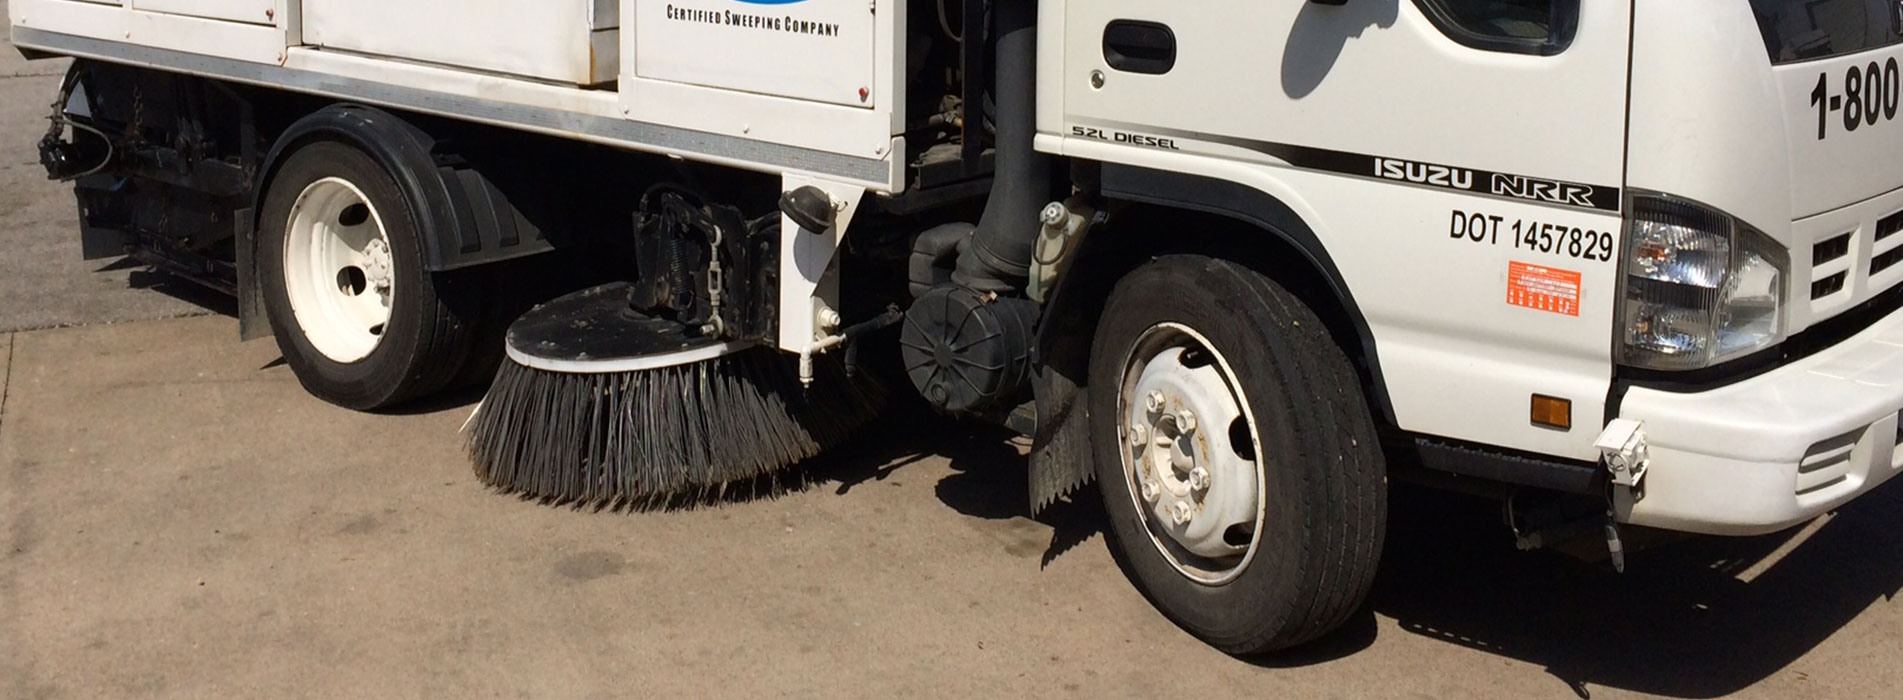 Street Sweeper with Brushes | Katsam Property Services